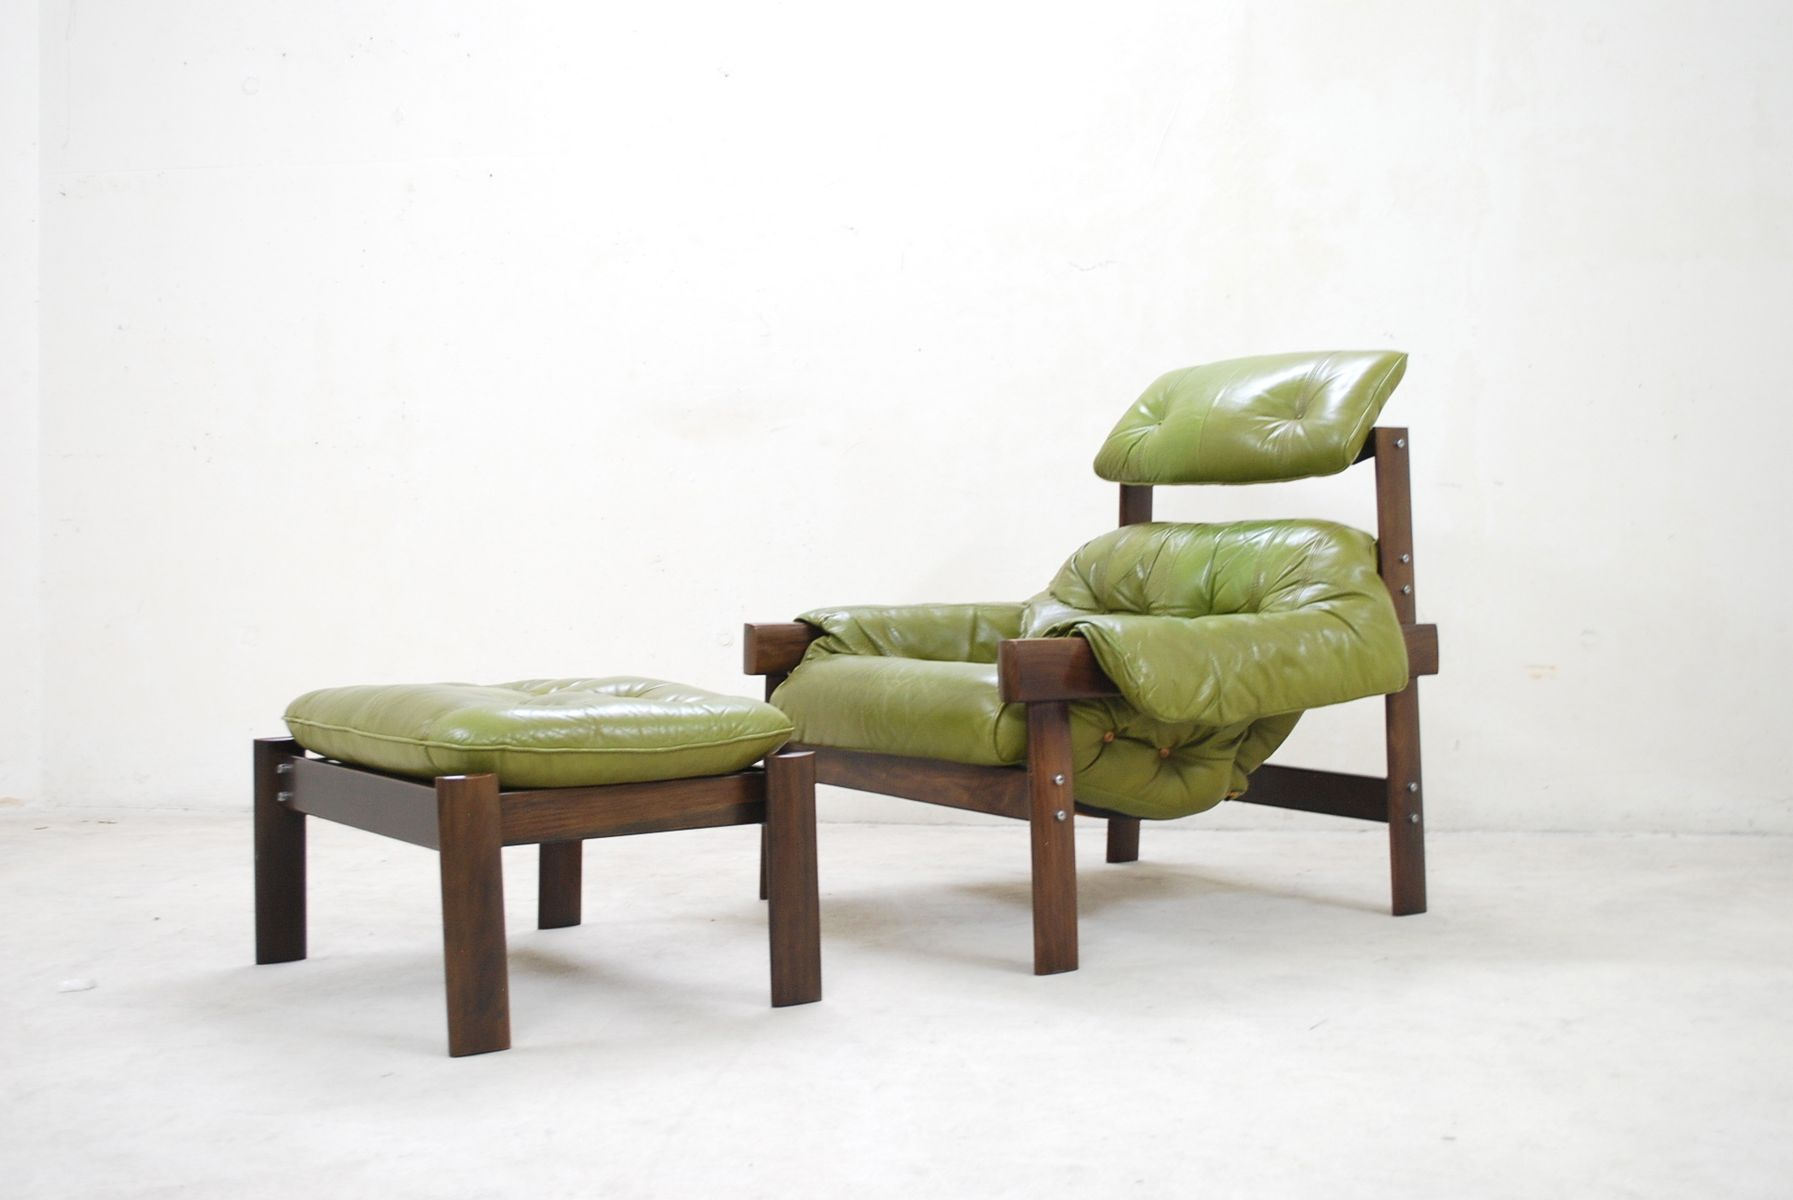 lime green chairs for sale folding chair hong kong model mp 041 leather lounge and ottoman